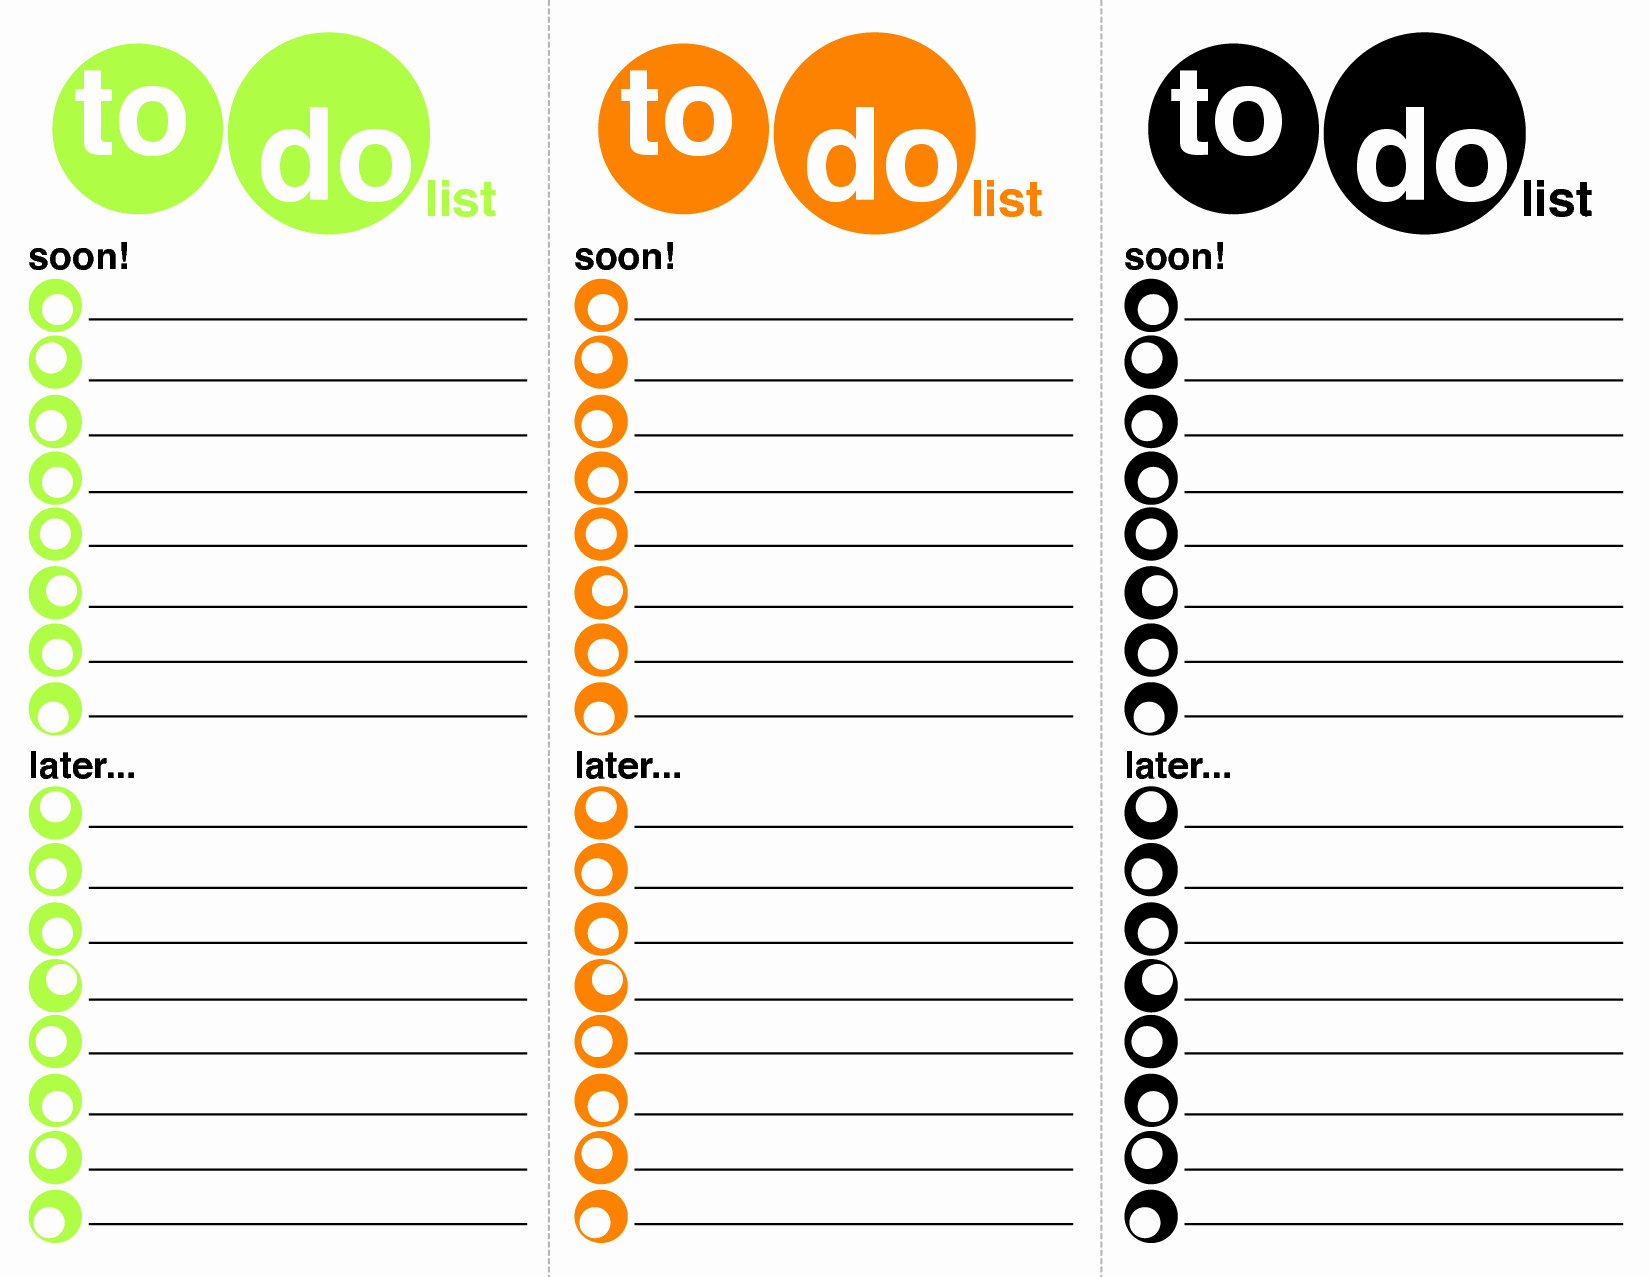 To Do List Free Templates Elegant to Do List Template Word